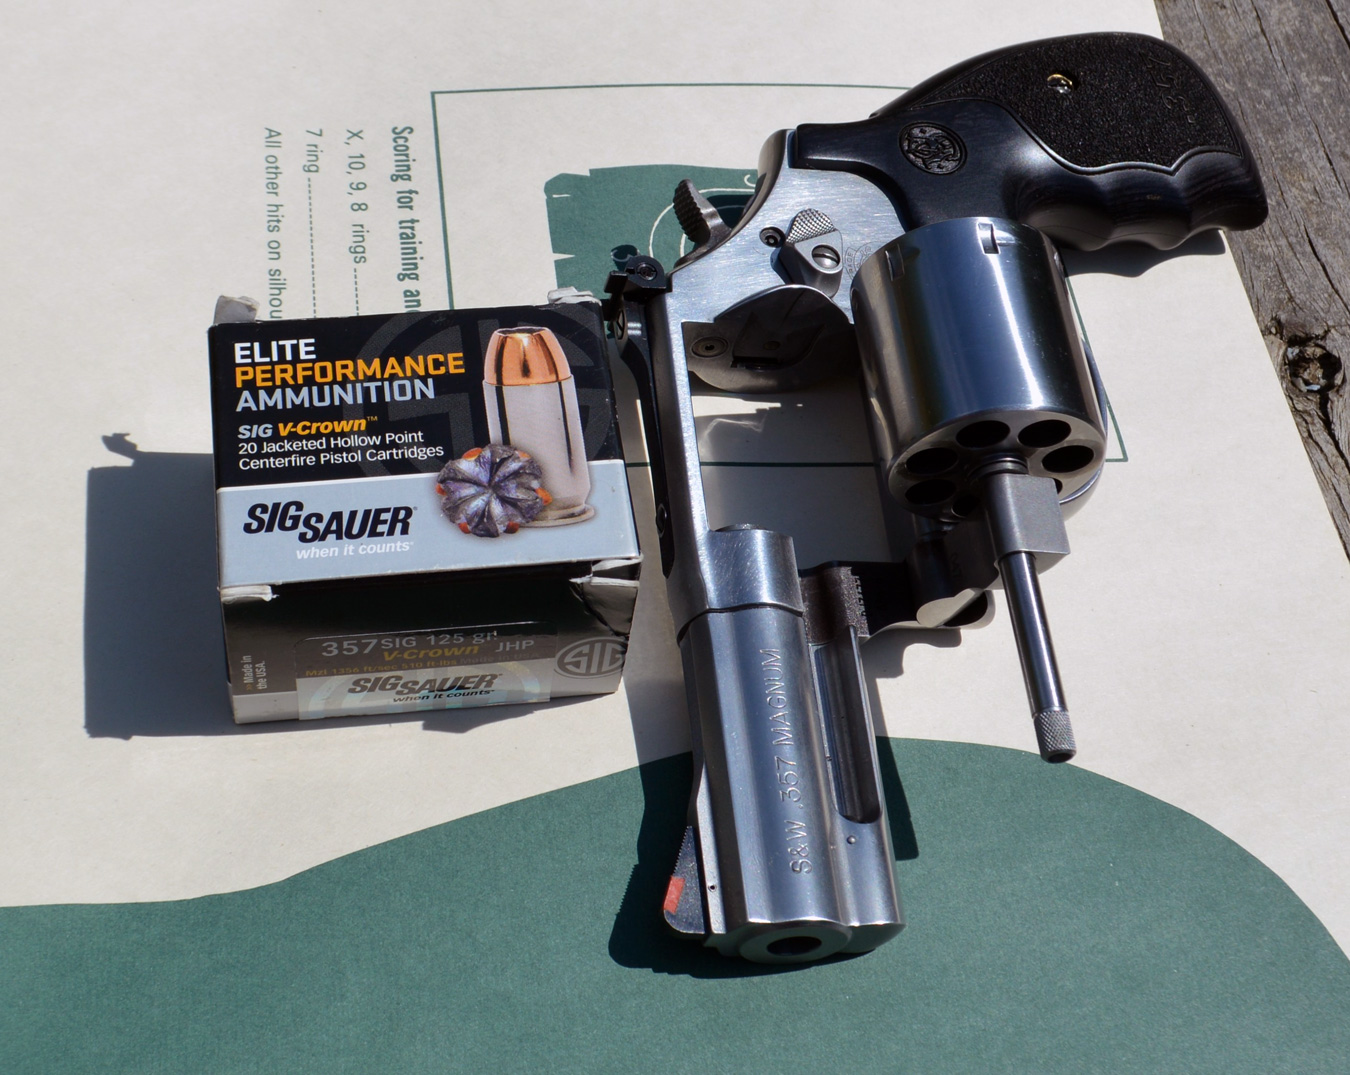 Smith and Wesson 686 plus revolver with open cylinder and SIG Sauer V-Crown ammunition box